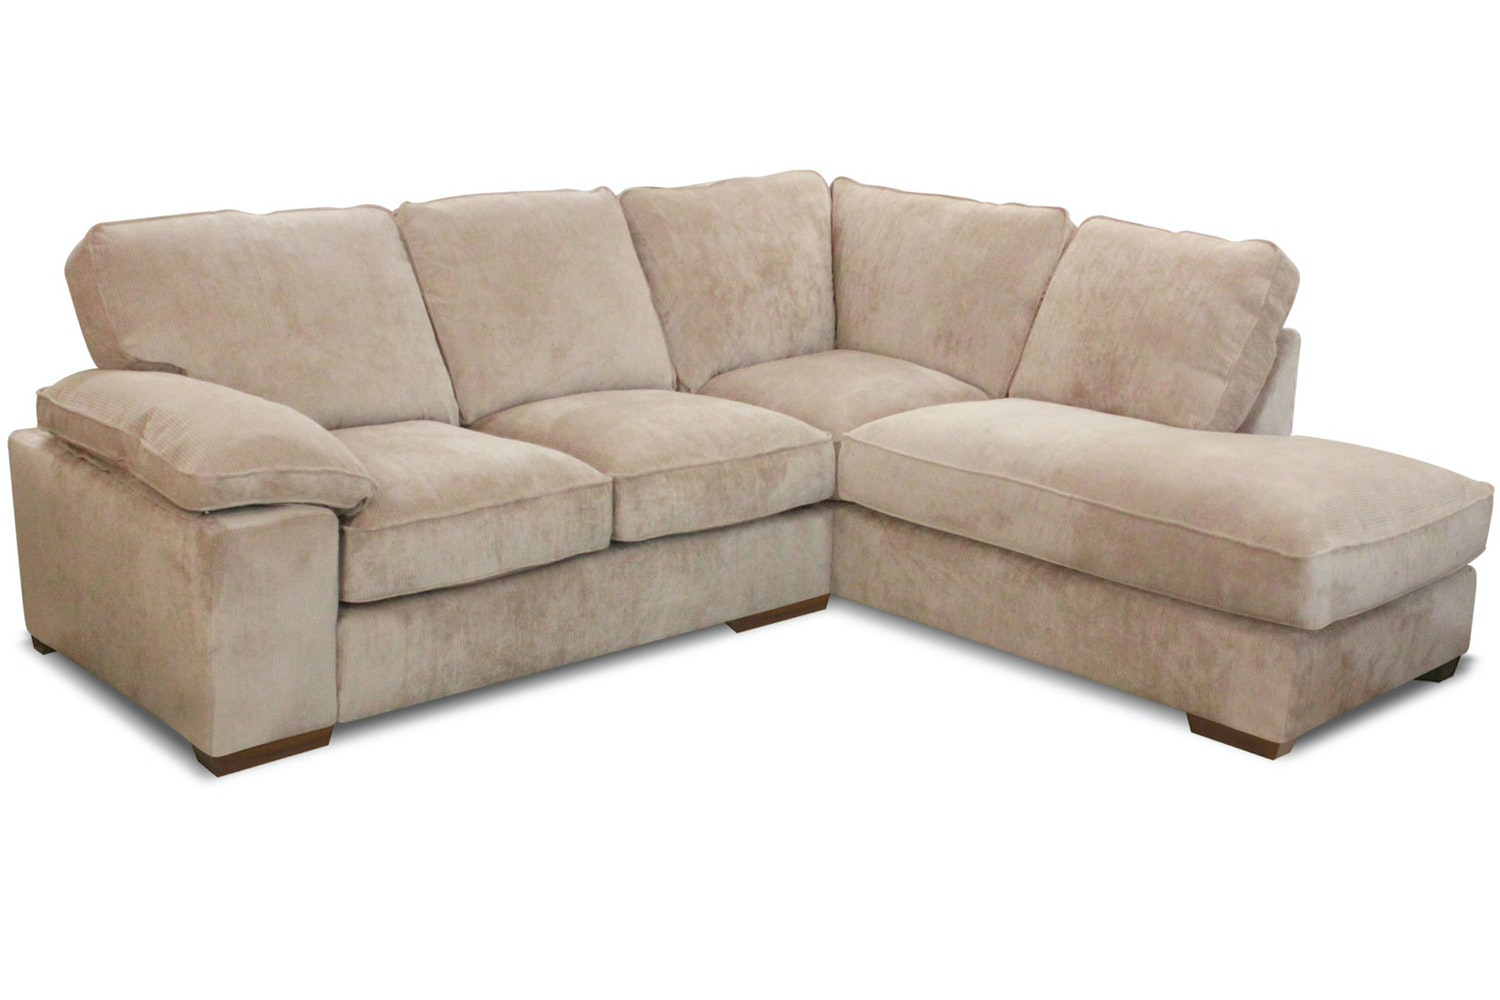 Utah Corner Sofa With Sofa Bed Ireland